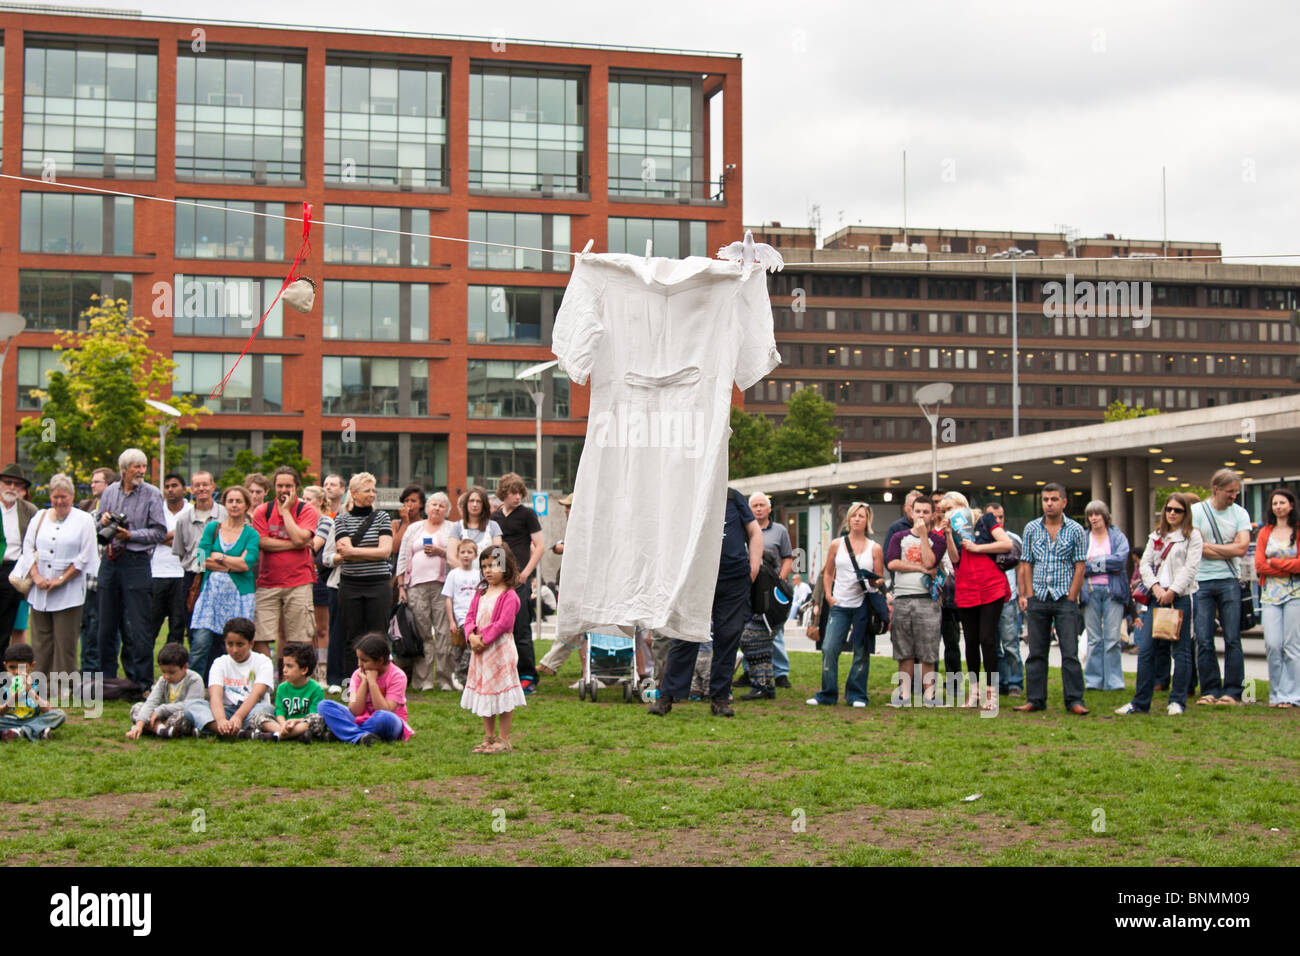 White dress hanging from above grass a line in an urban environment - Stock Image